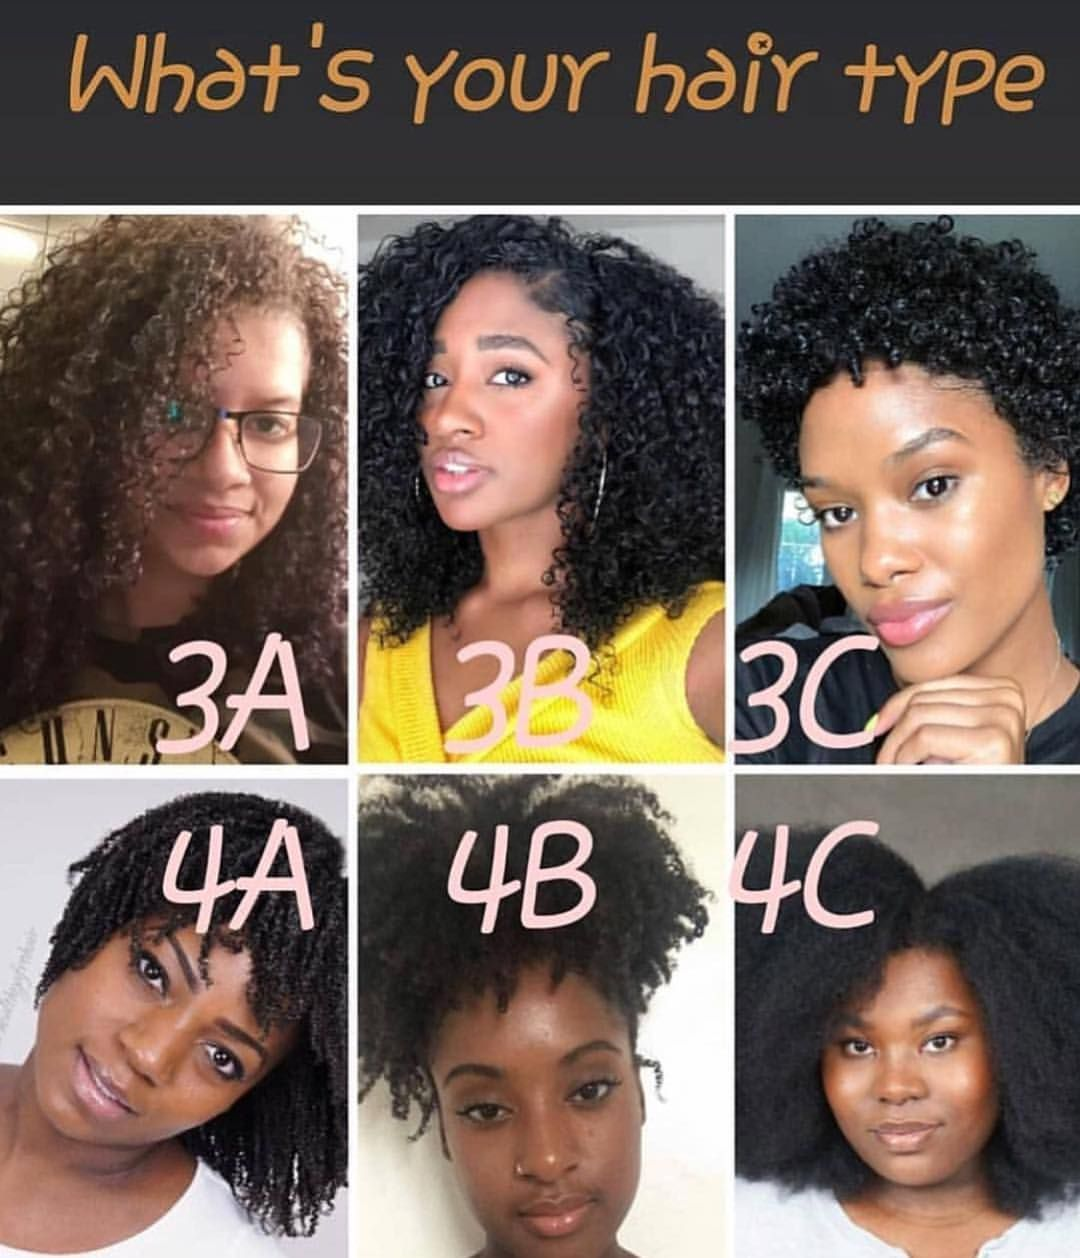 What S Your Hair Type Follow For More Natural Hair Types Natural Hair Styles Natural Curls Hairstyles